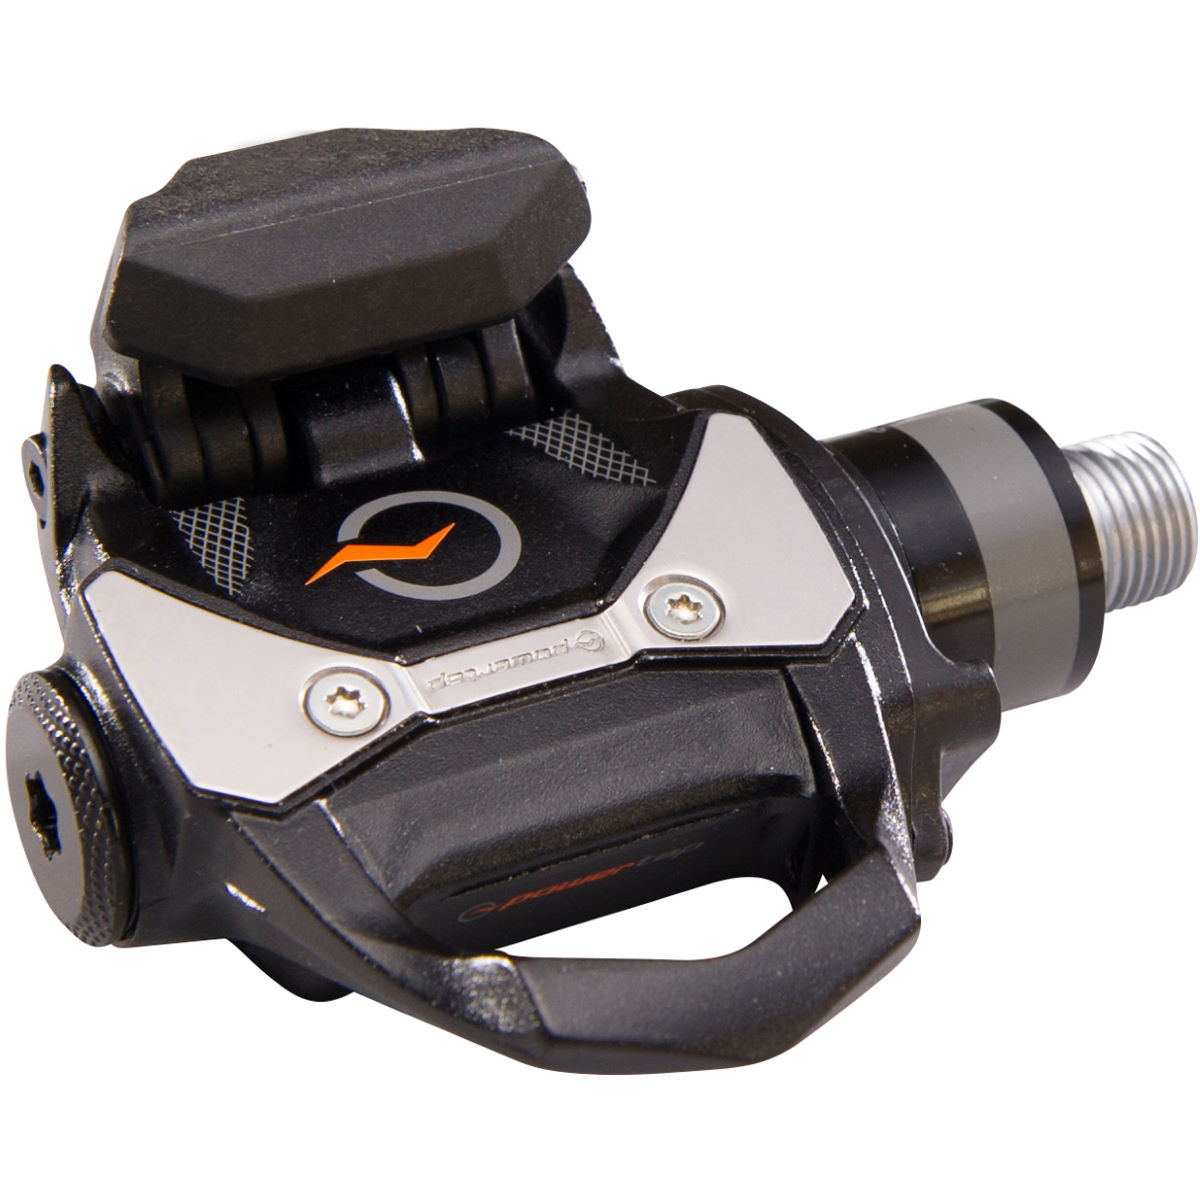 PowerTap P1 Pedal Powermeter Set